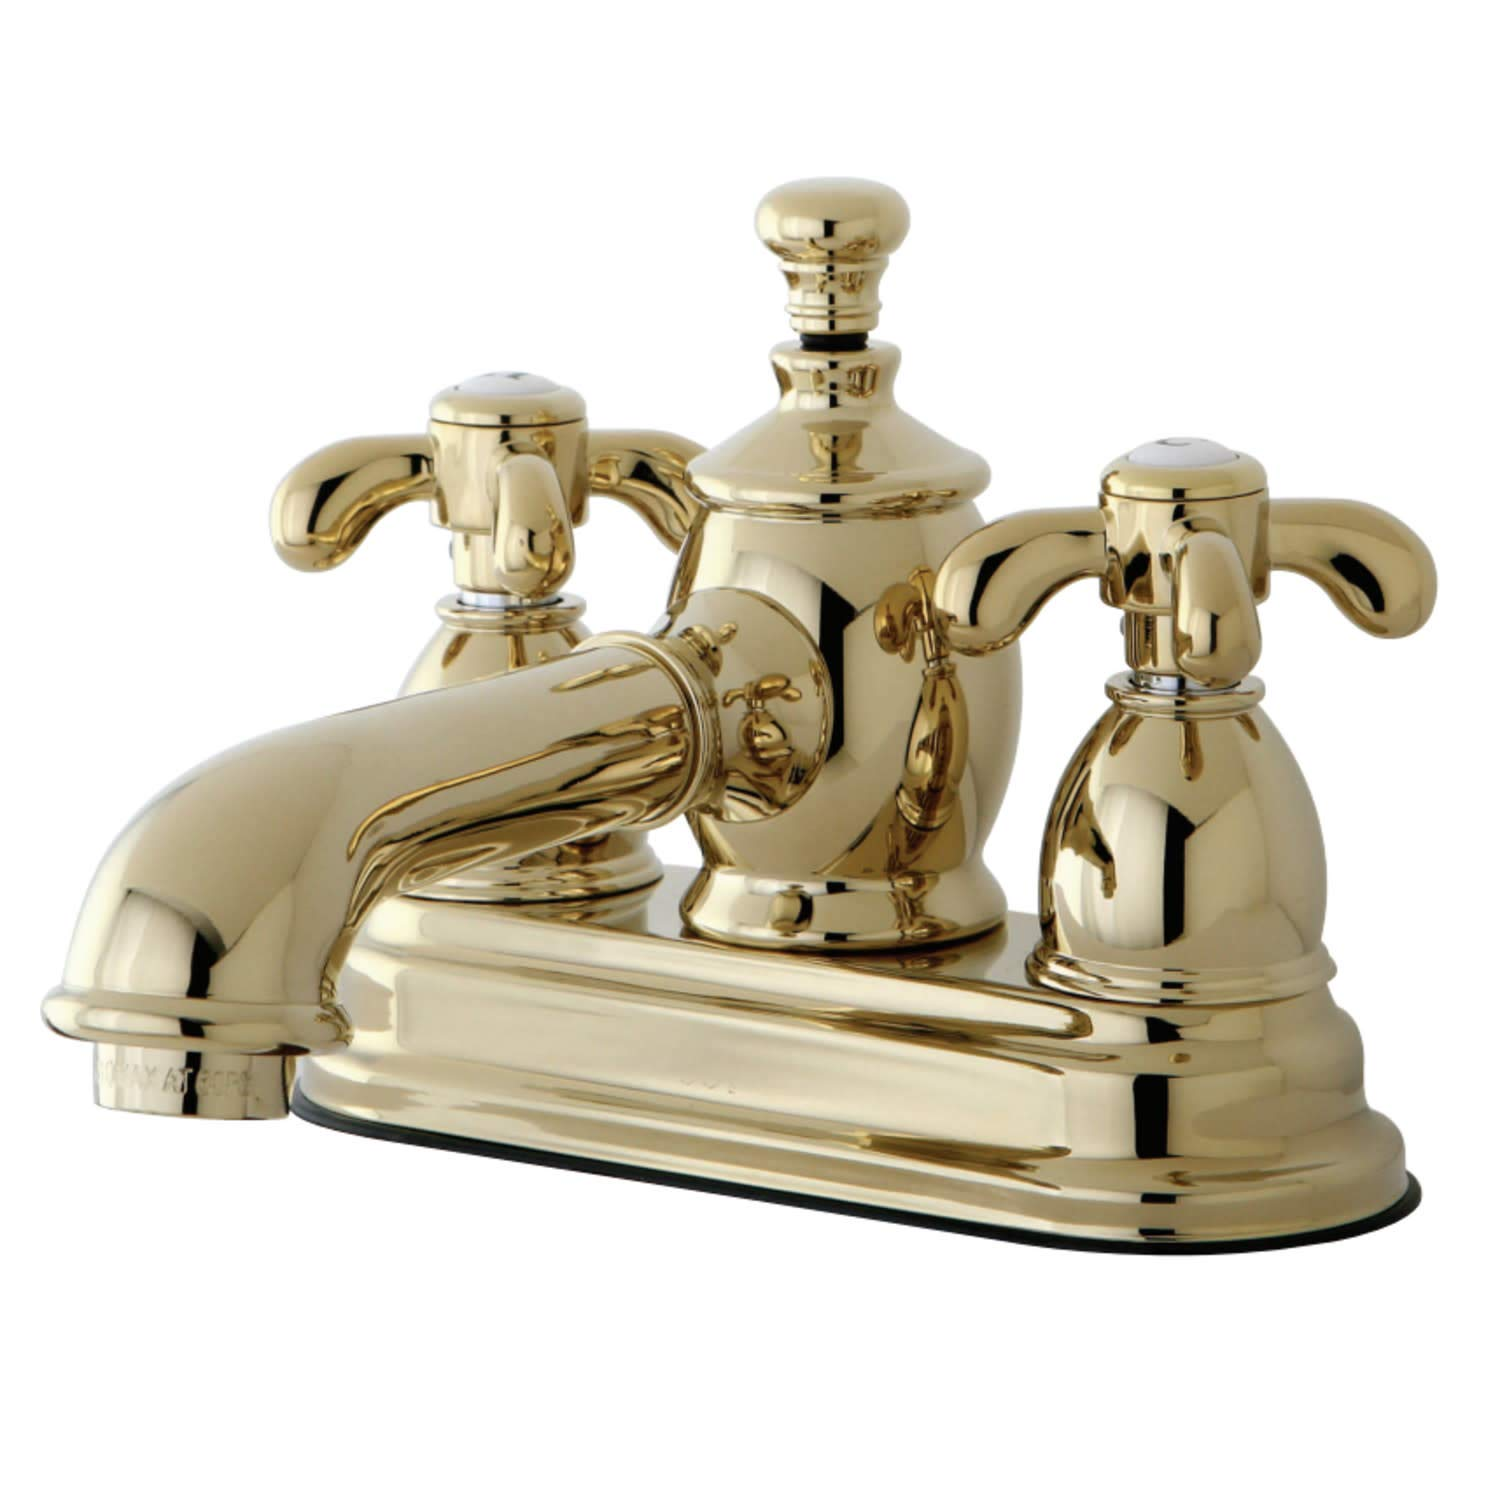 Kingston Brass KS7001TX French Country 4-Inch Centerset Lavatory Faucet with Brass Pop-Up 4-1//2 Polished Chrome